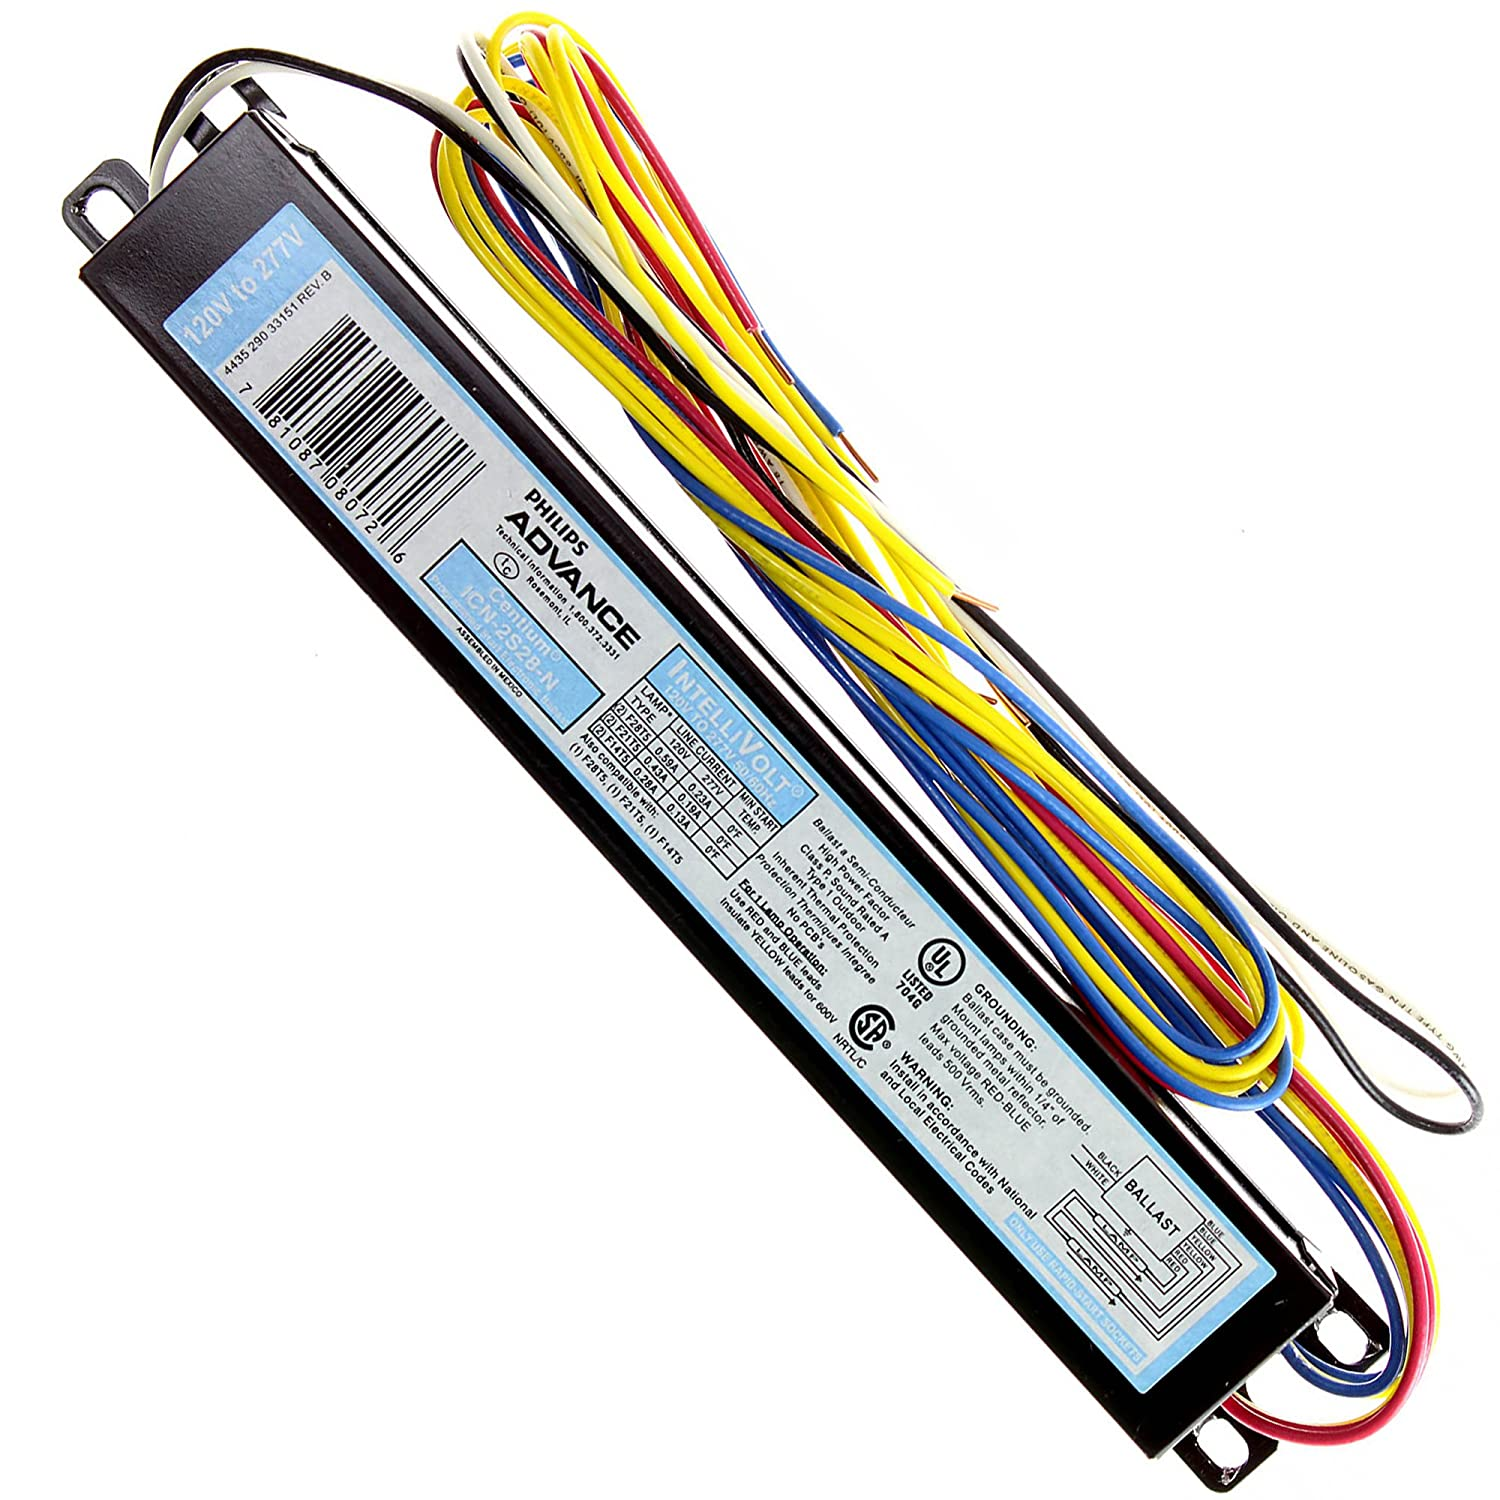 Philips Advance Icn 2s28 N Centium Electronic Ballast 120 277v T8 Wiring Diagram F28t5 2 Lamp